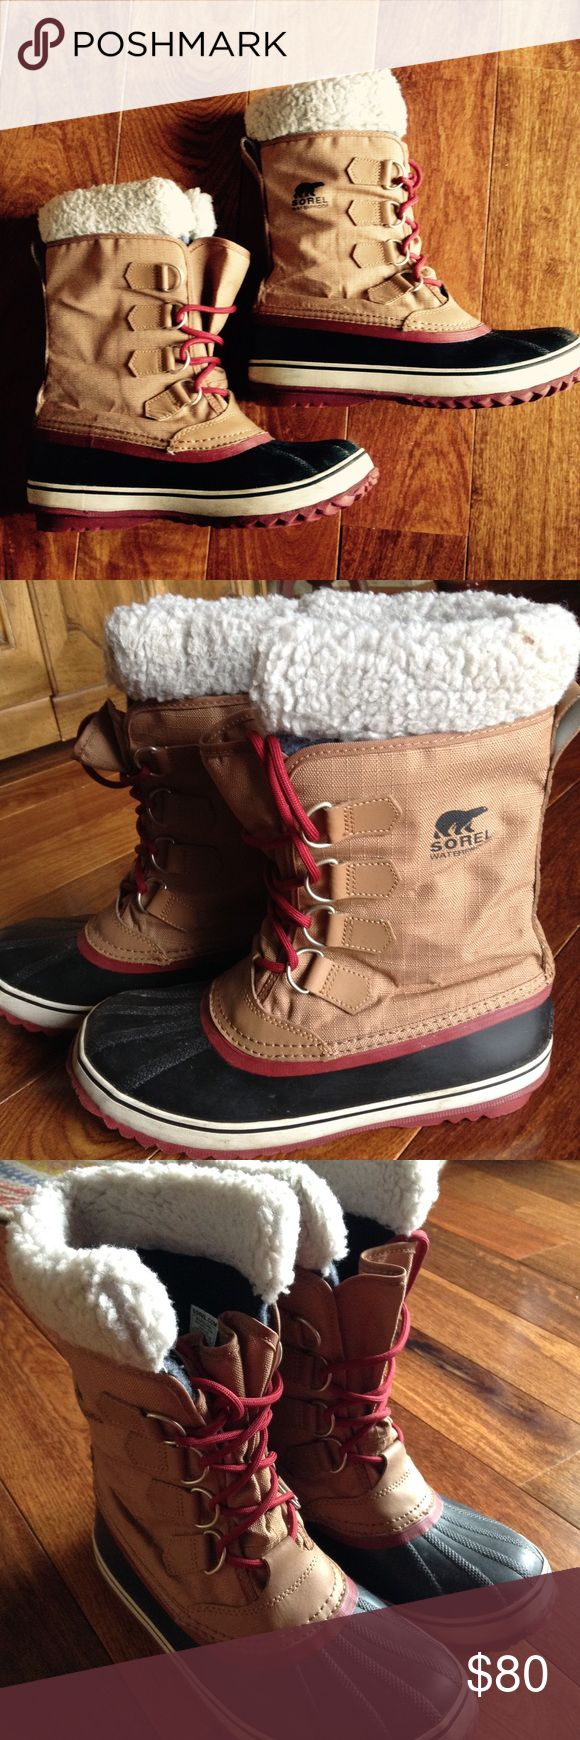 "SOREL Women's Winter Carnival Boots Color: Elk & Red Dahlia / Seam-sealed waterproof construction / Upper: waterproof nylon / Outsole: Hancrafted waterproof vulcanized rubber shell with herringbone outsole / Insulation: Removable 6mm washable, recycled felt InnerBoot with Sherpa Pile snow cuff / SOREL rated to: -25 degrees Fahrenheit / 32 degrees Celsius / Shaft Height: 7.5"" / Good for: HEAVY SNOW / GREAT CONDITION SOREL Shoes Winter & Rain Boots"